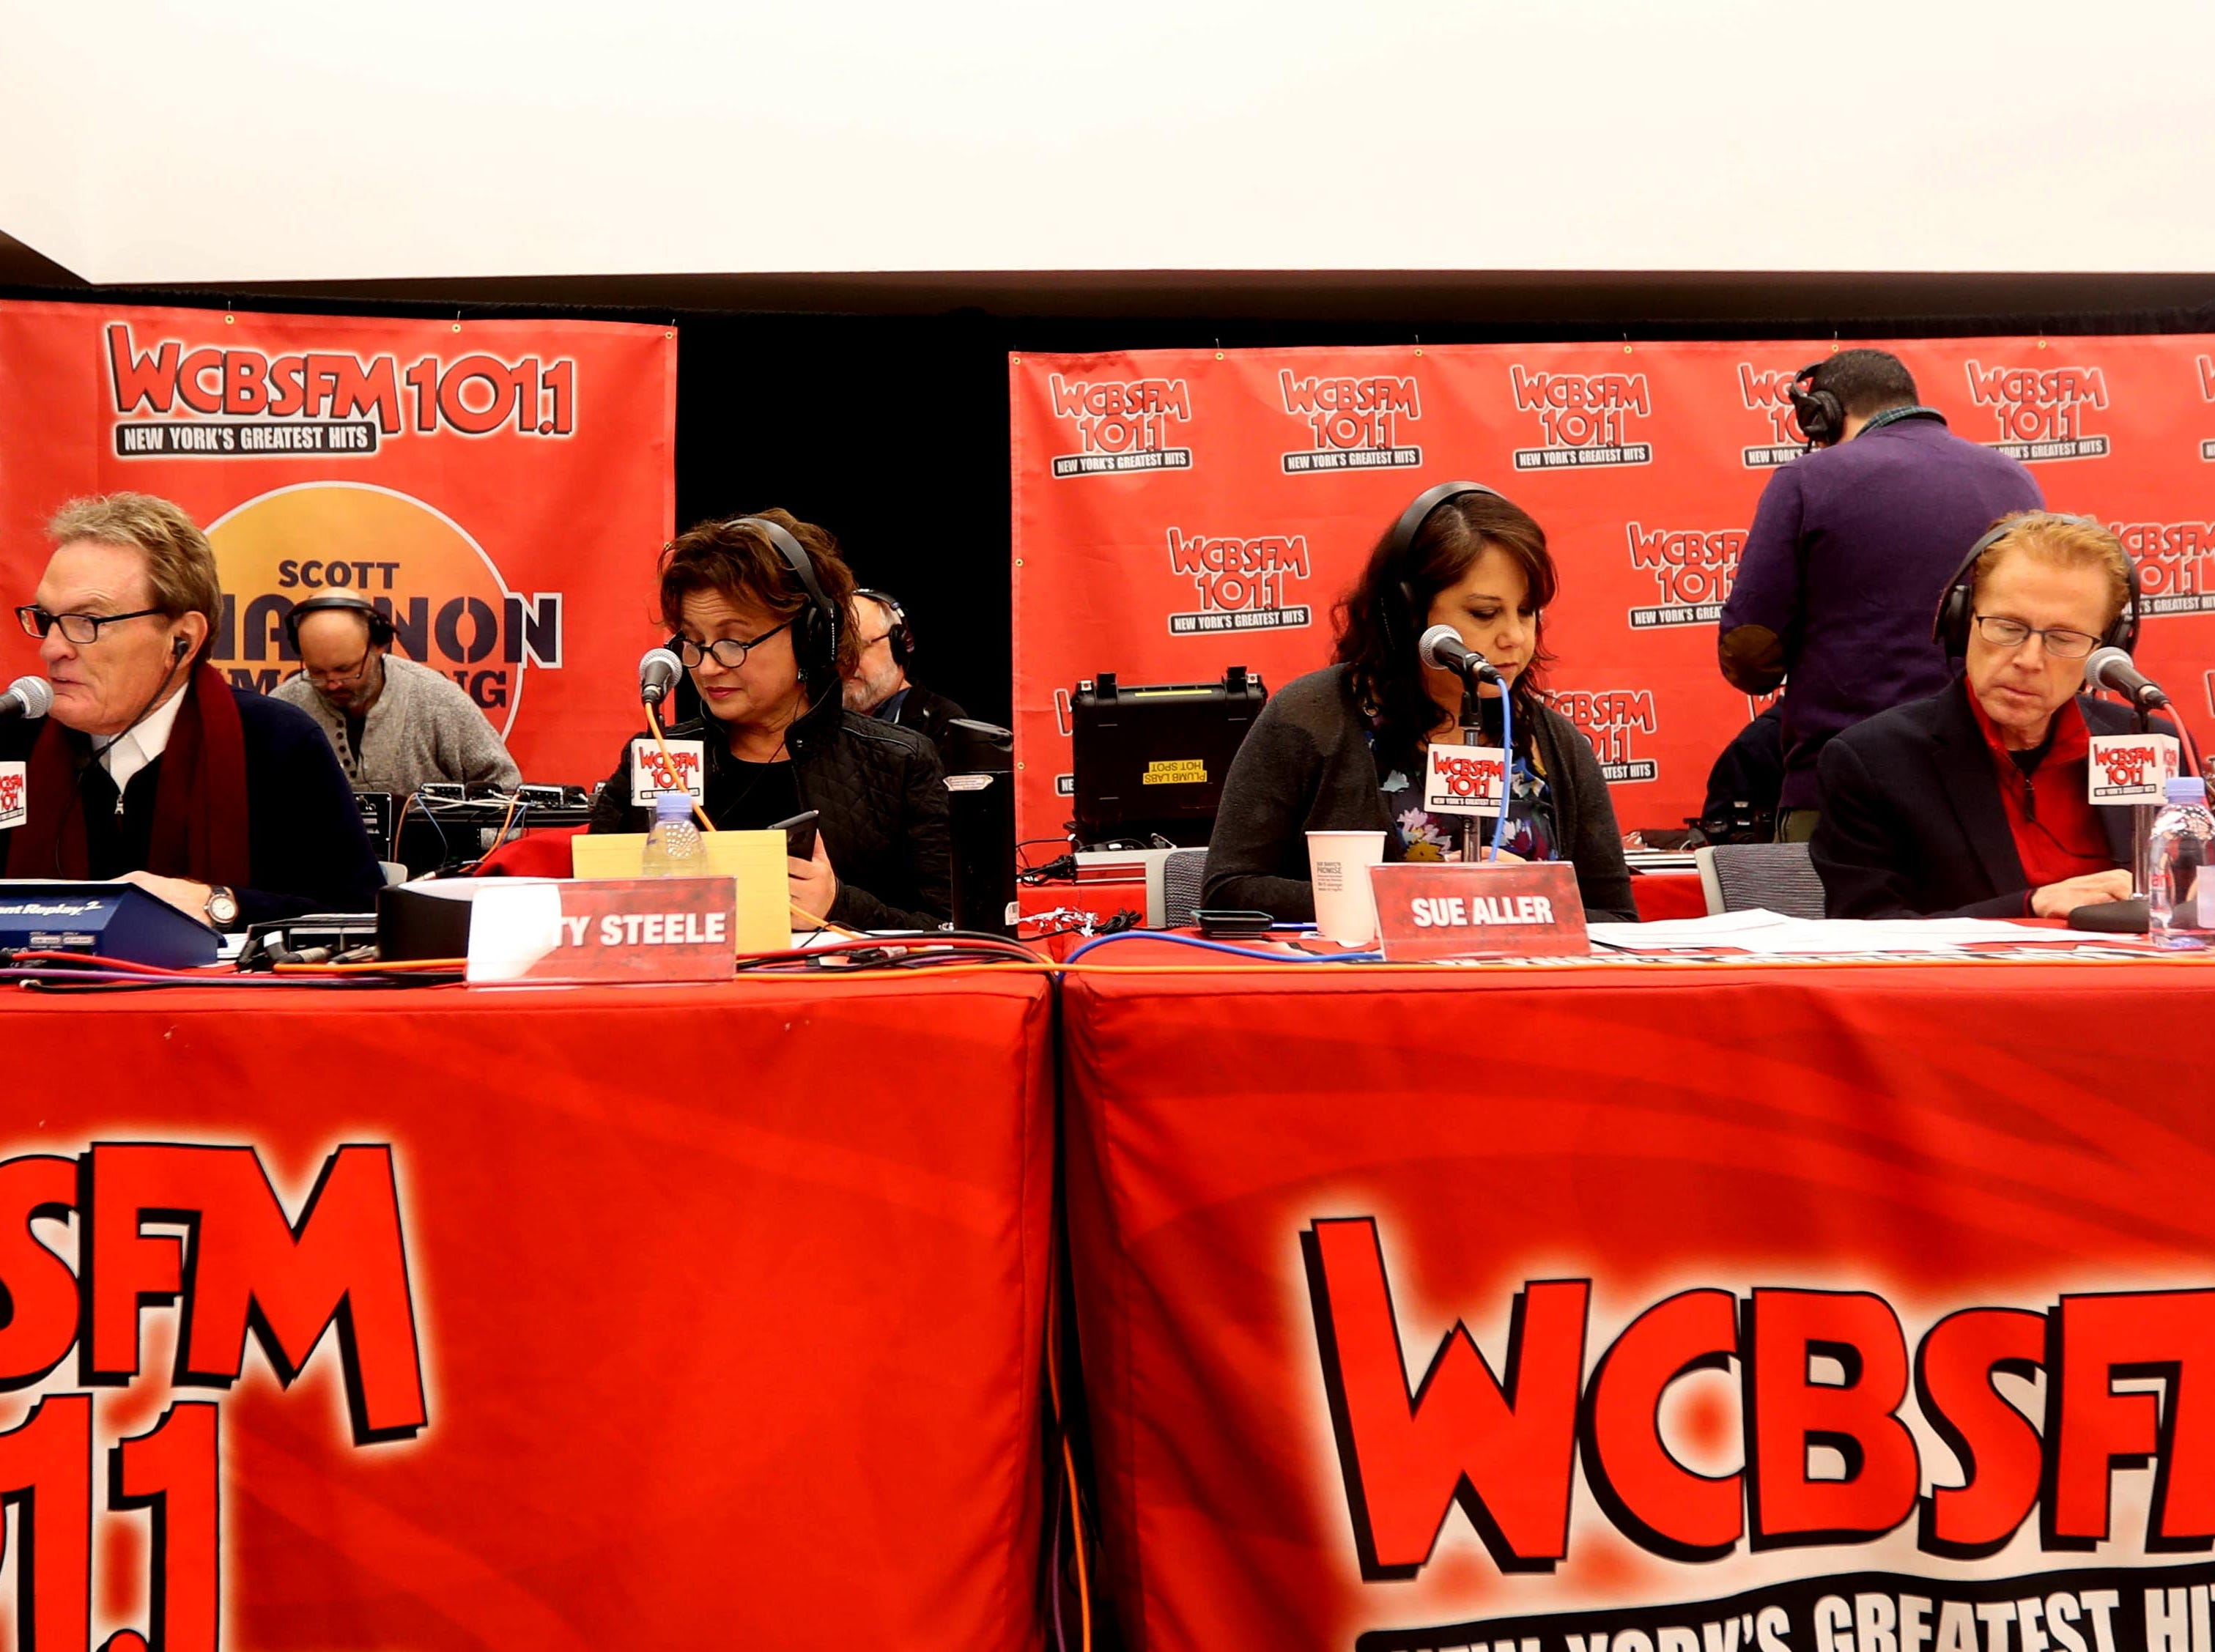 Scott Shannon, left, morning disc jockey with WCBS-FM, along with his on-air radio team, hosts the annual holiday show at Blythedale Children's Hospital in Valhalla Dec. 14, 2018. This year's show included performances by Rob Thomas of Matchbox Twenty, Mark Rivera, who is Billy Joel's longtime saxophonist, and Grammy nominated singer and songwriter Gavin DeGraw. The event included a live auction that featured autographed guitars by Jon Bon Jovi and Rob Thomas and tickets to a Billy Joel concert at Madison Square Garden.